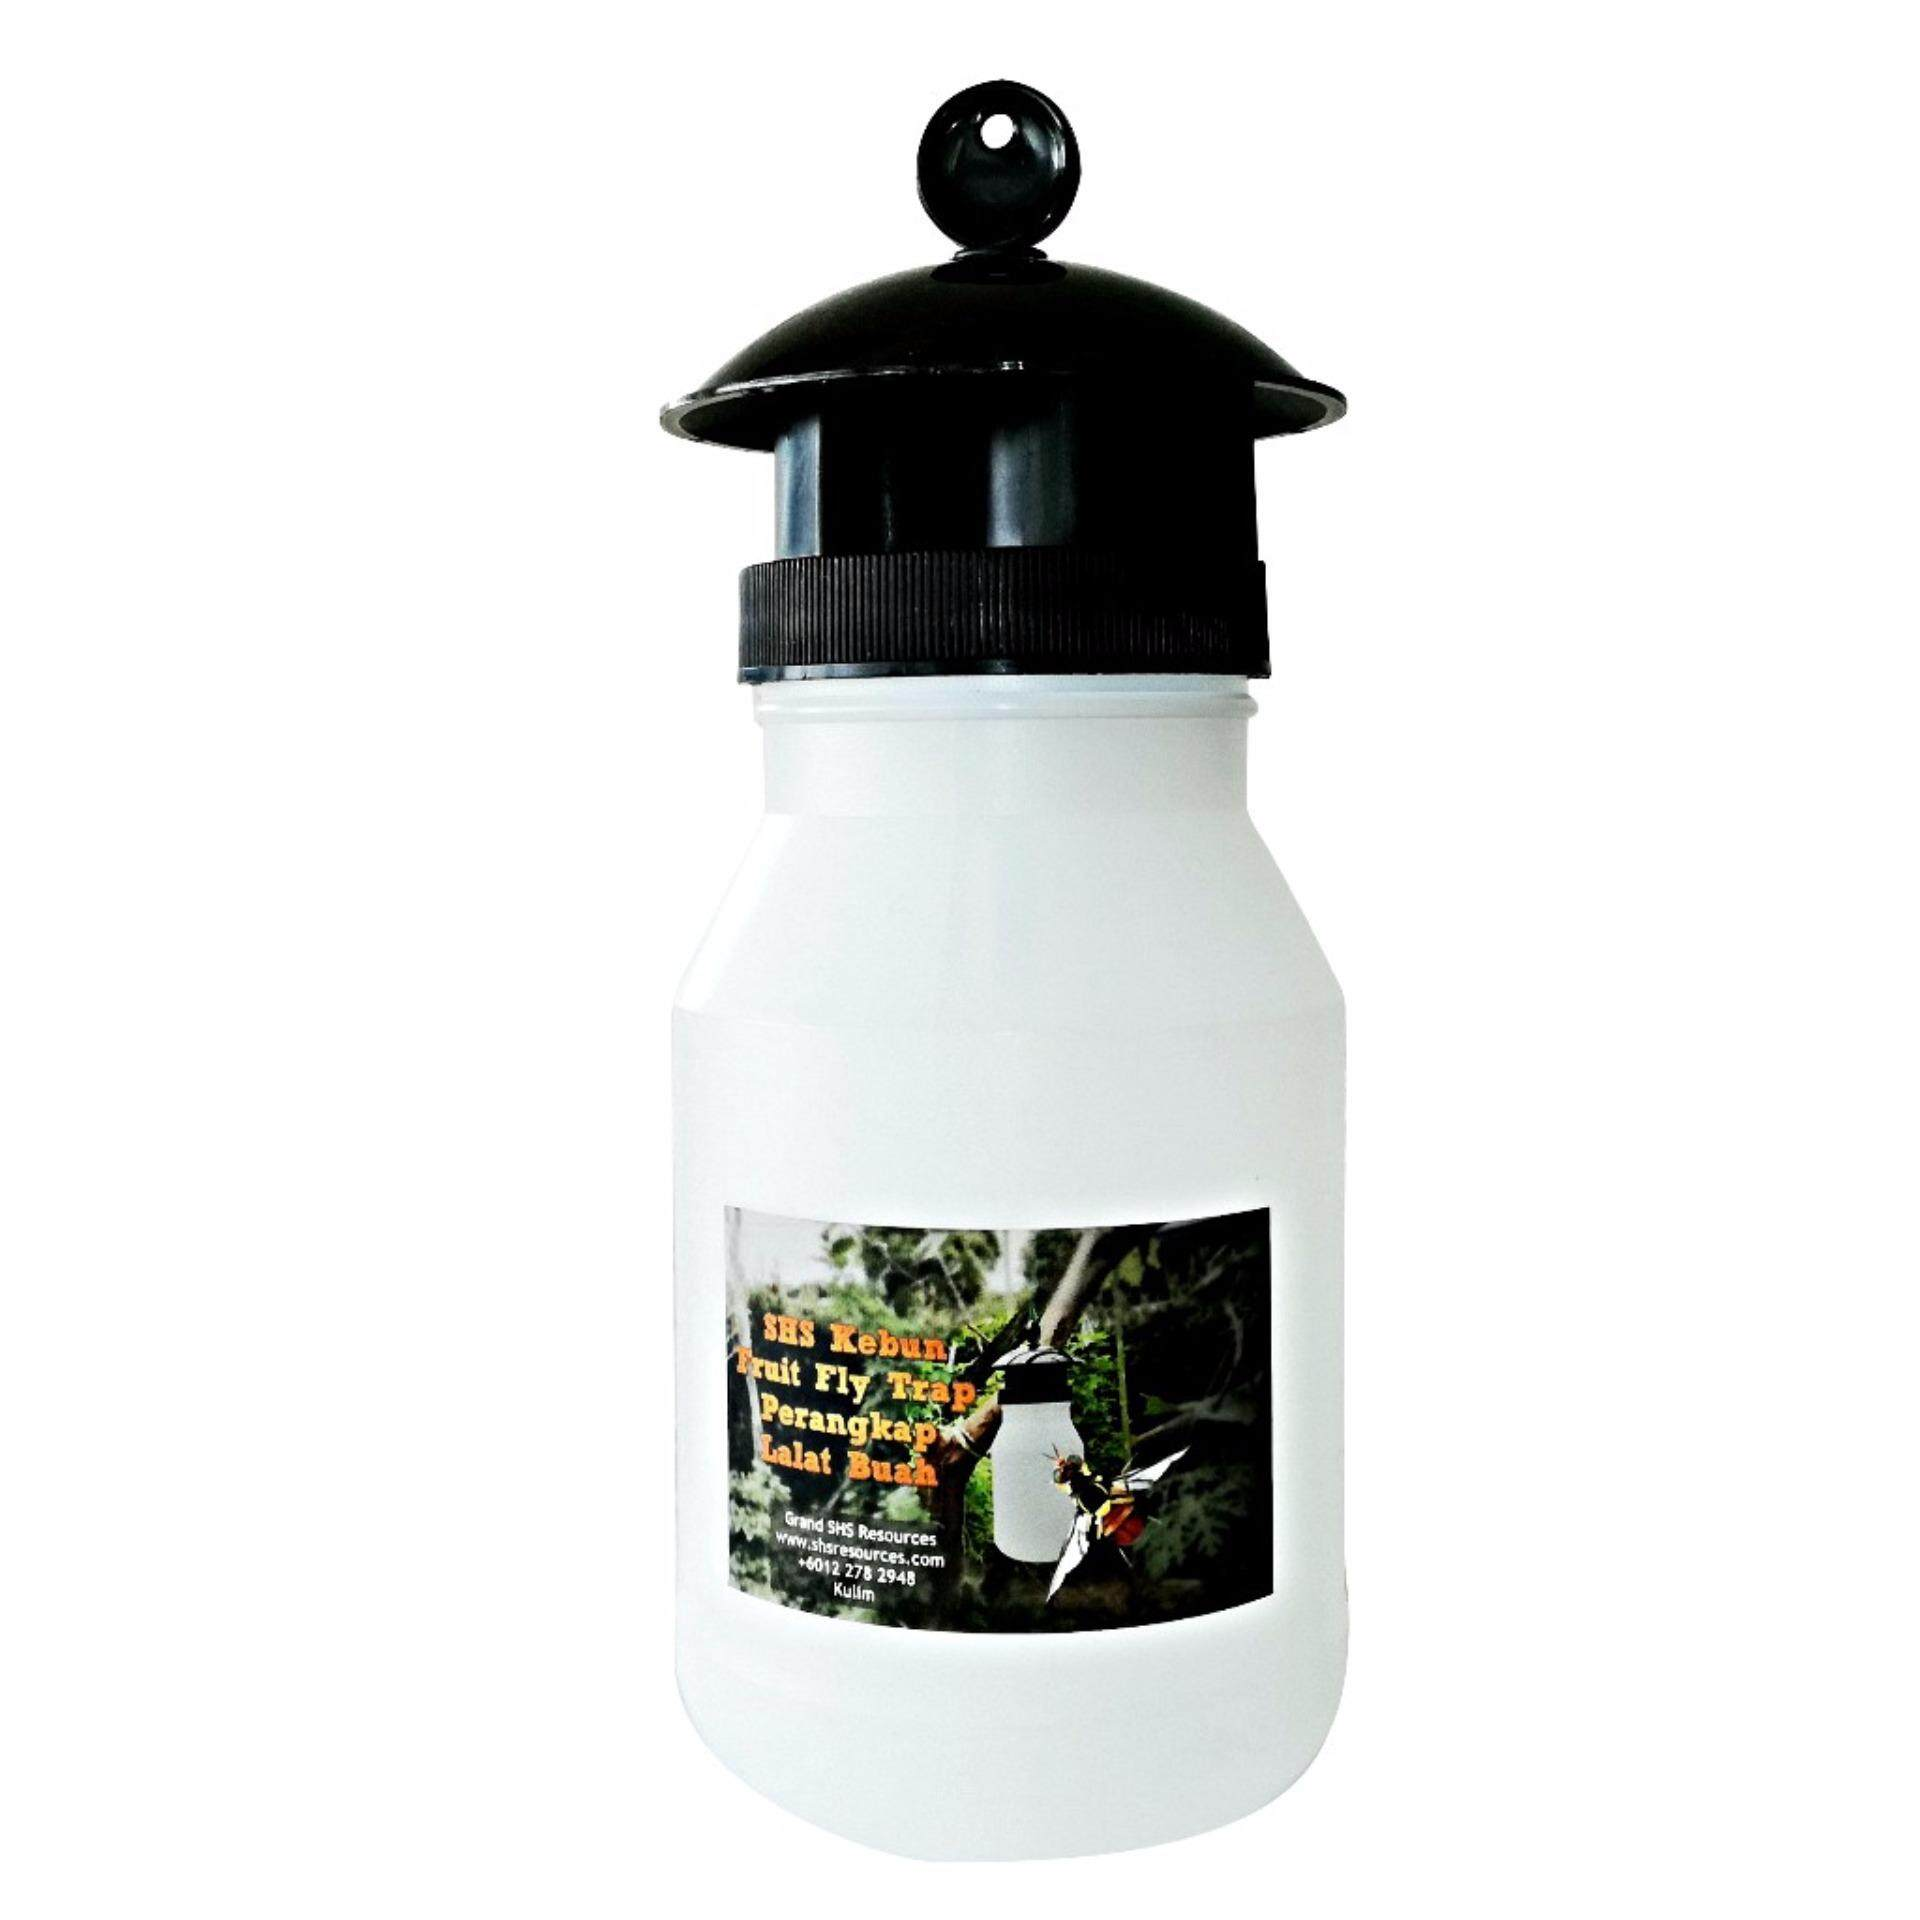 SHS Kebun Oriental Fruit Fly Trap for Pest Control Prevent Fruit Rot in Garden and Farm Non-toxic Organic Way